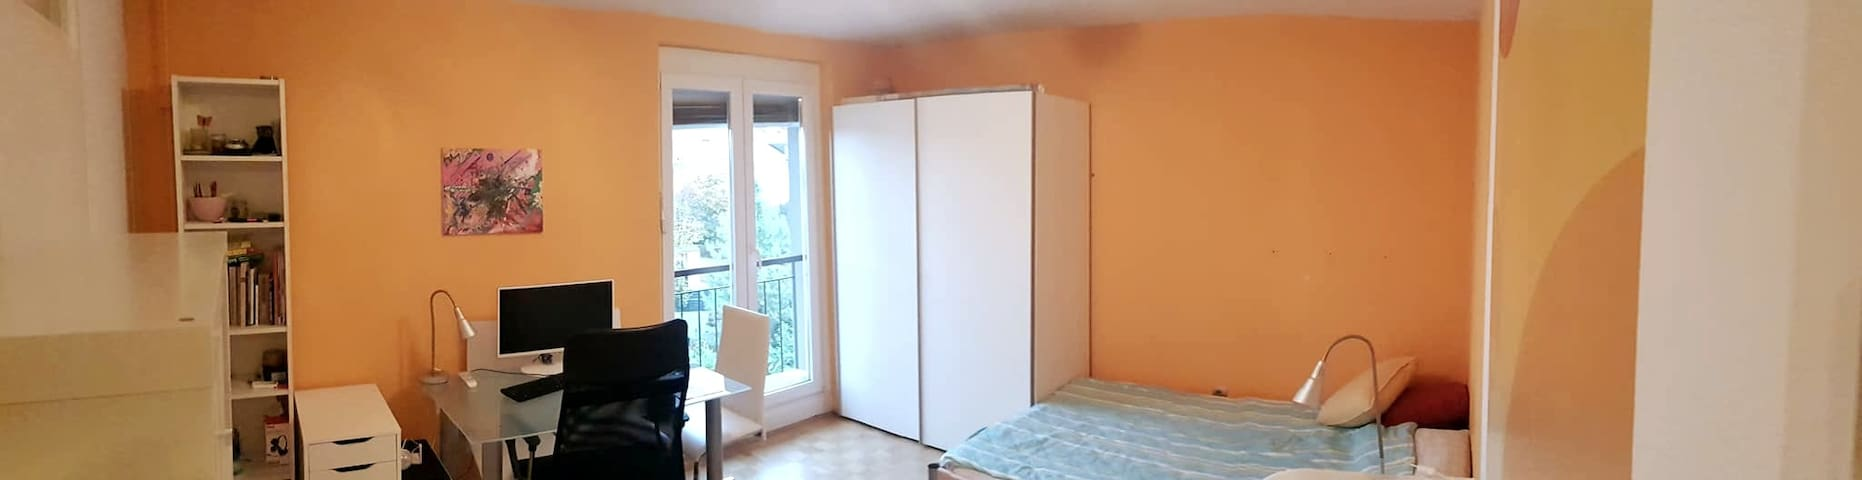 ☆Charming studio close to center and green parks☆